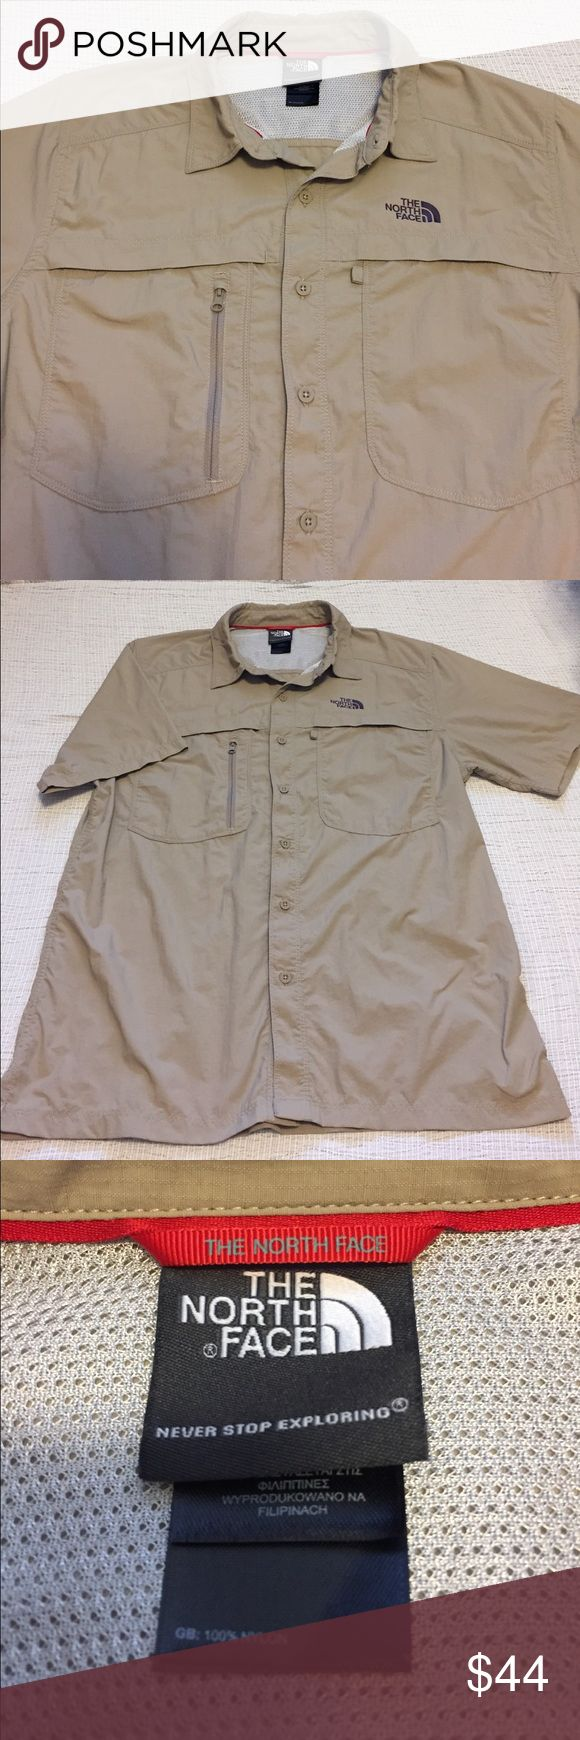 """Men's - The North Face tan button down shirt This shirt is in excellent condition! There's 3 pockets on the front and vented on the back.   Measurements: Total length - 28 3/4"""" Armpit to armpit - 21"""" Sleeve length - 9 3/4""""  M1018 The North Face Shirts"""